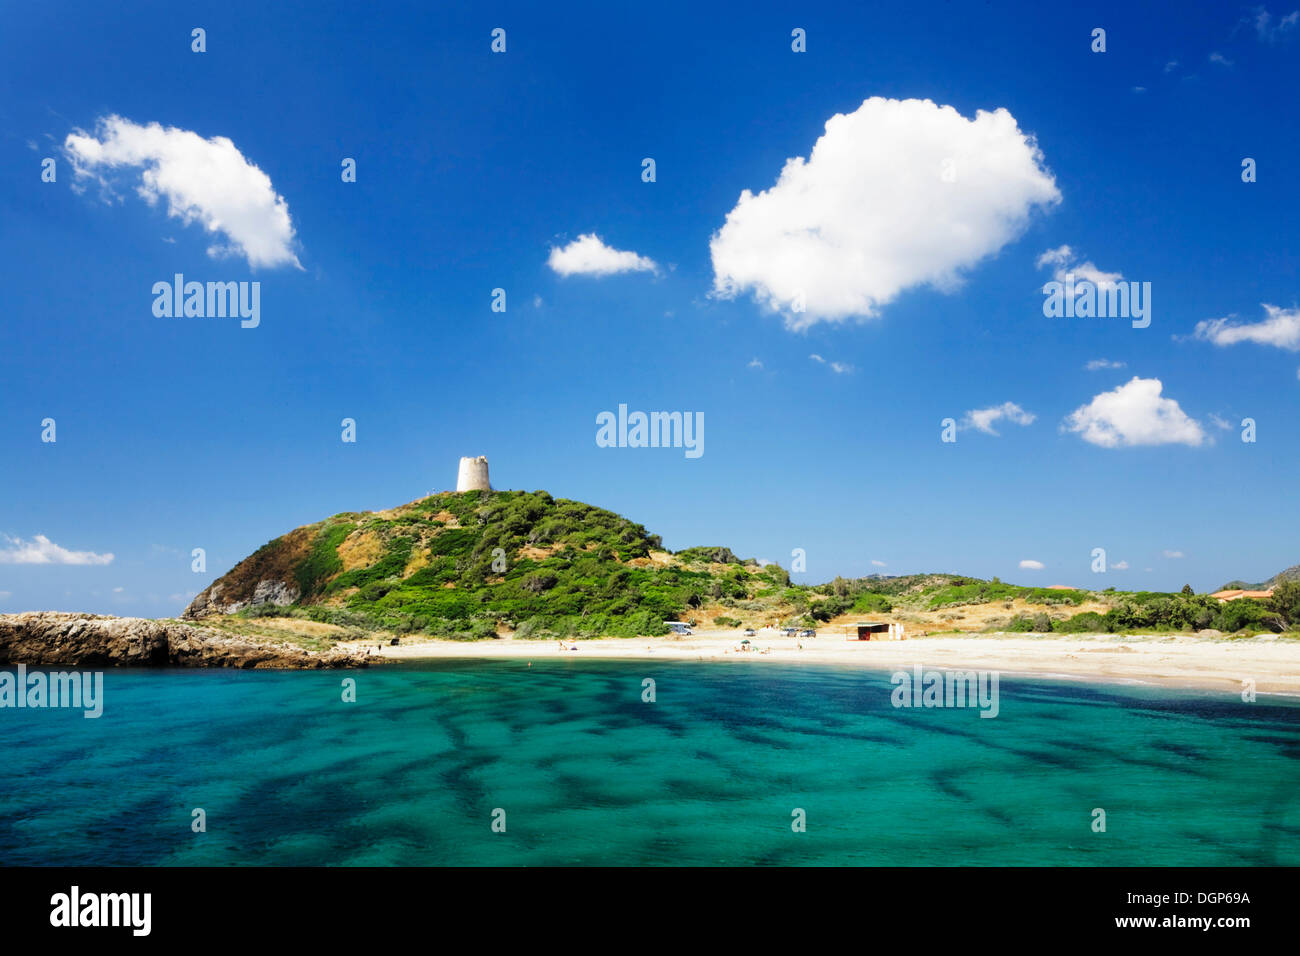 Saracen Tower, Torre di Chia, in a bay with the same name on the Costa del Sud, Sulcis Province, Sardinia, Italy, Europe - Stock Image